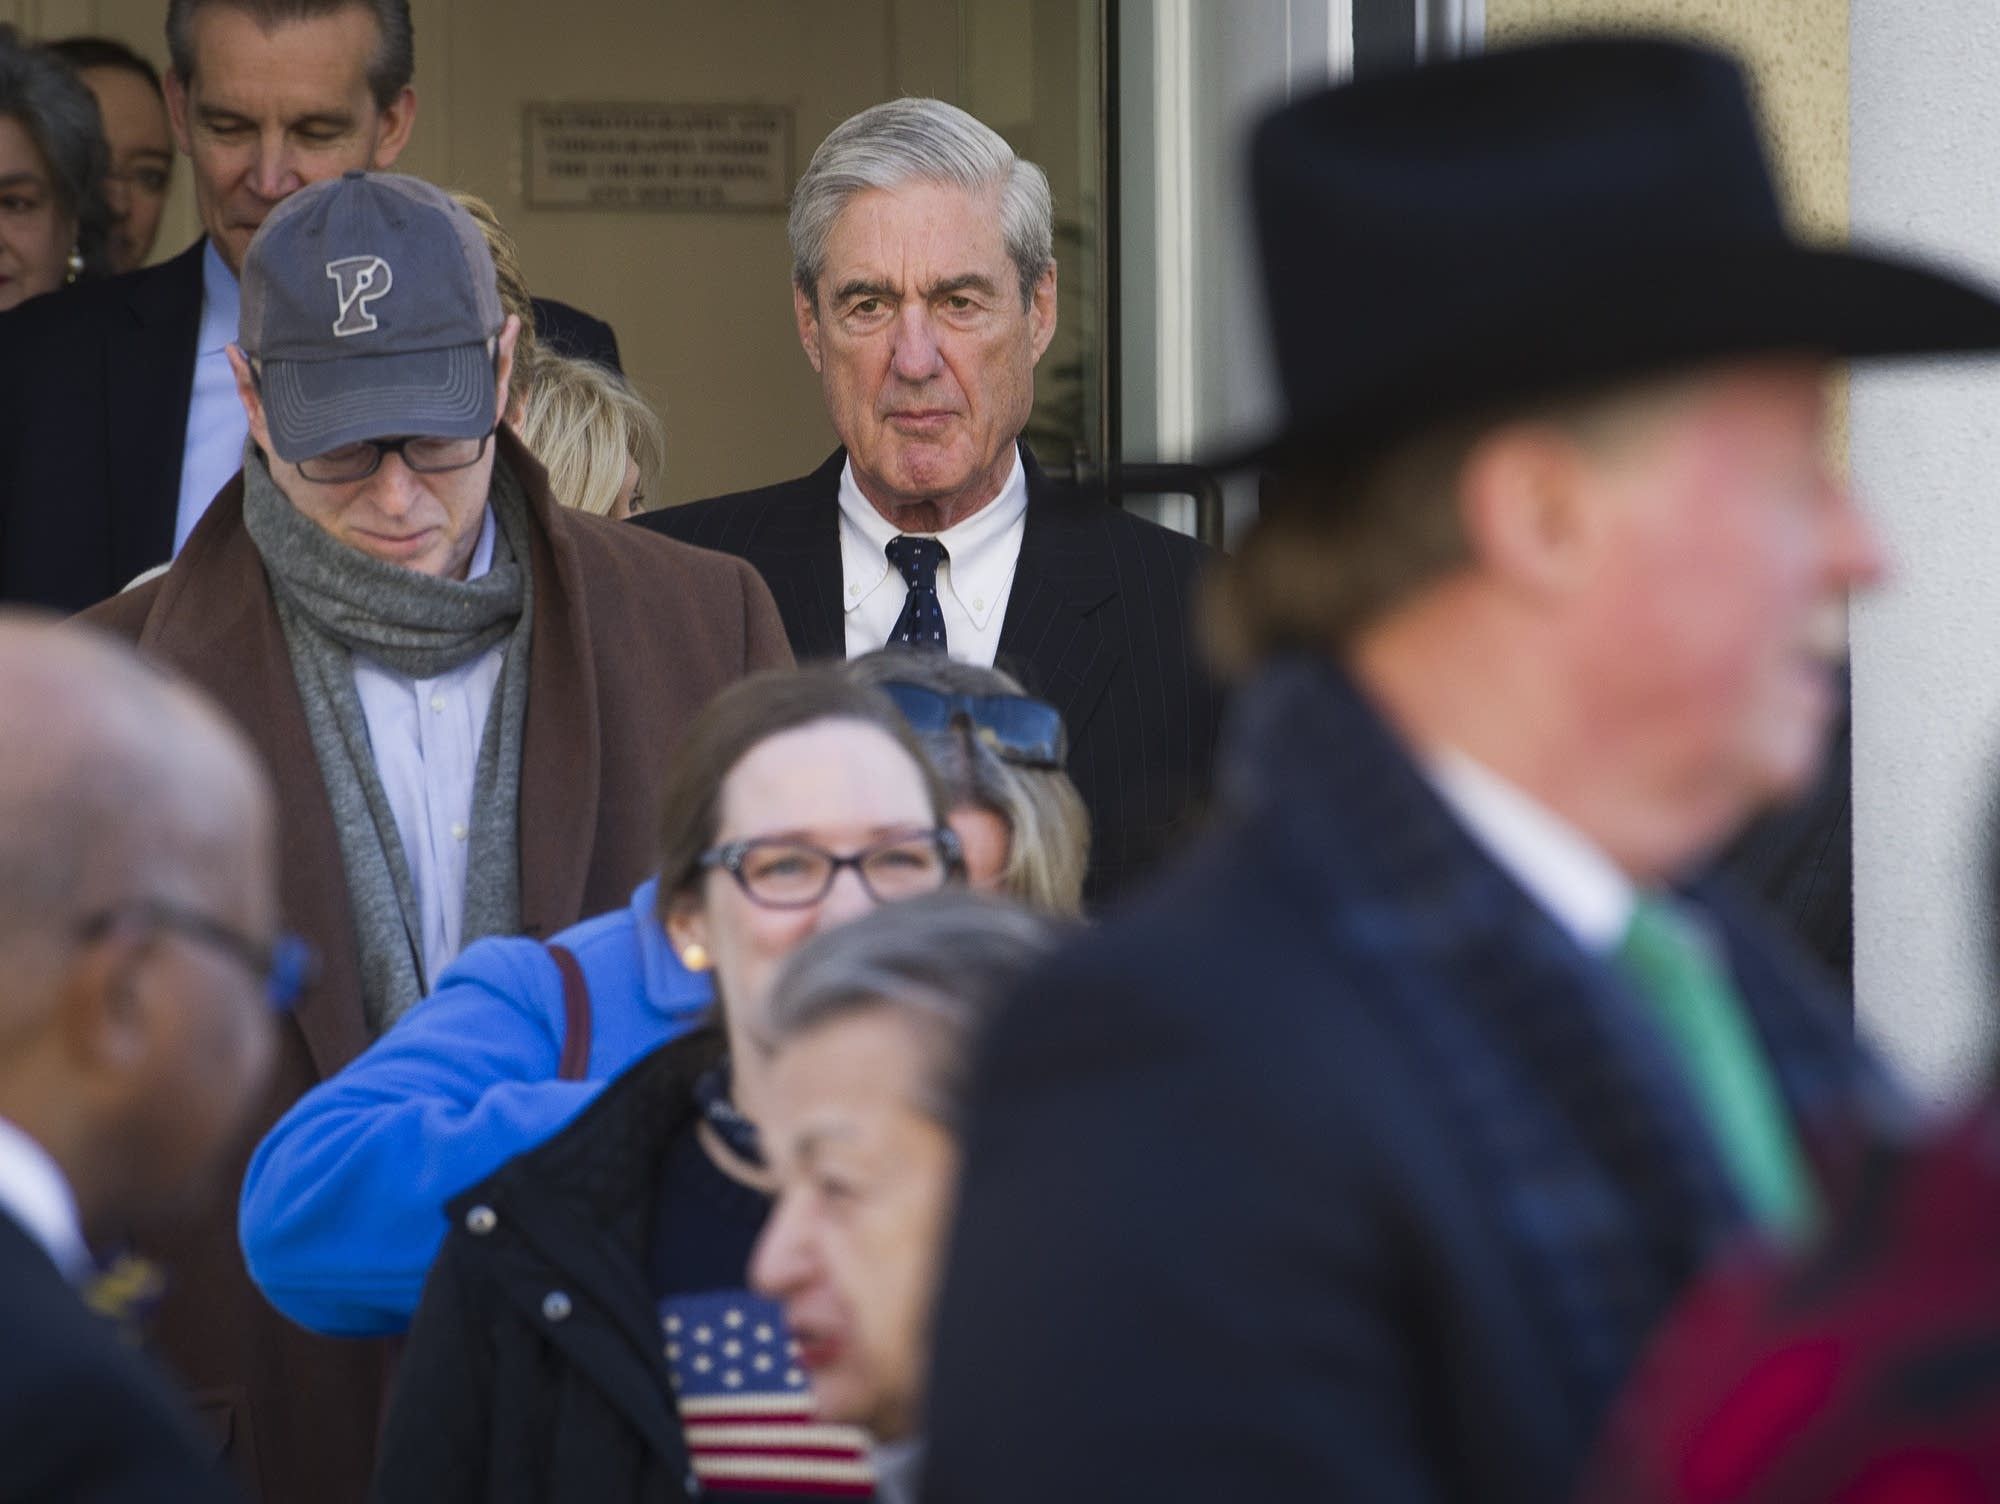 Special Counsel Robert Mueller exits St. John's Episcopal Church